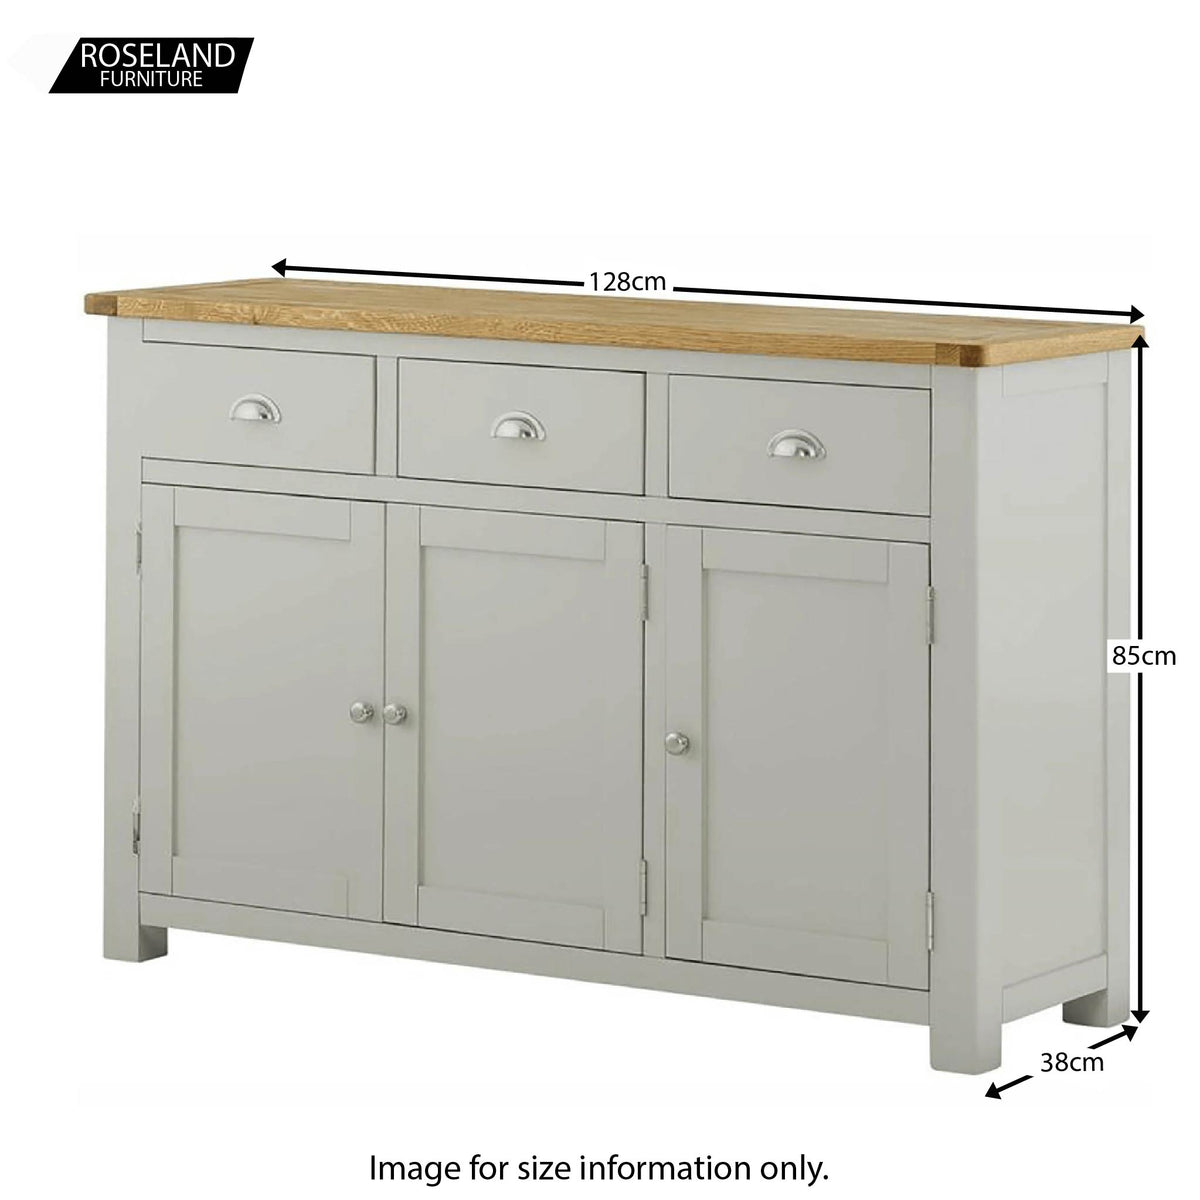 Padstow Grey 3 Door Sideboard - Size Guide of Overall Size